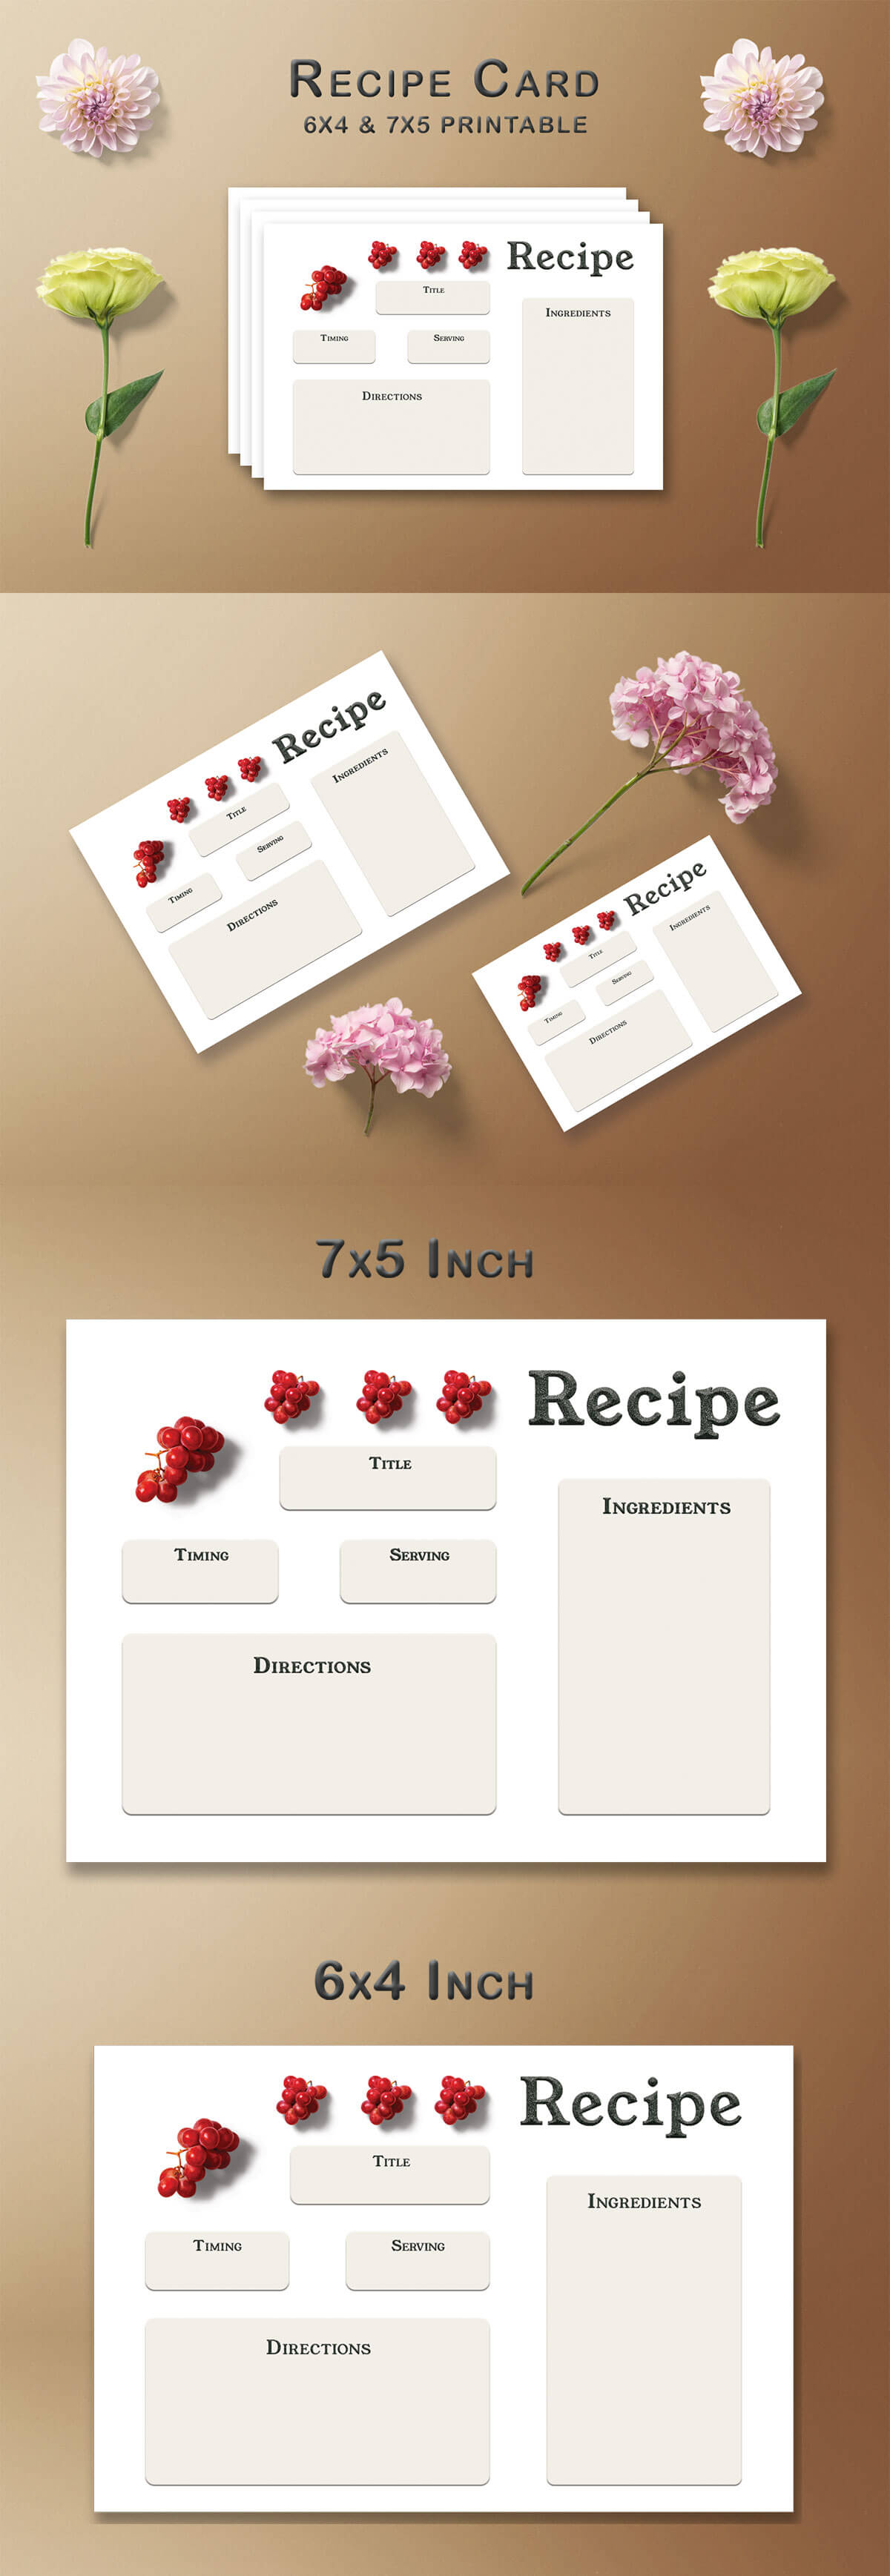 Free Red Grapes Recipe Card Template